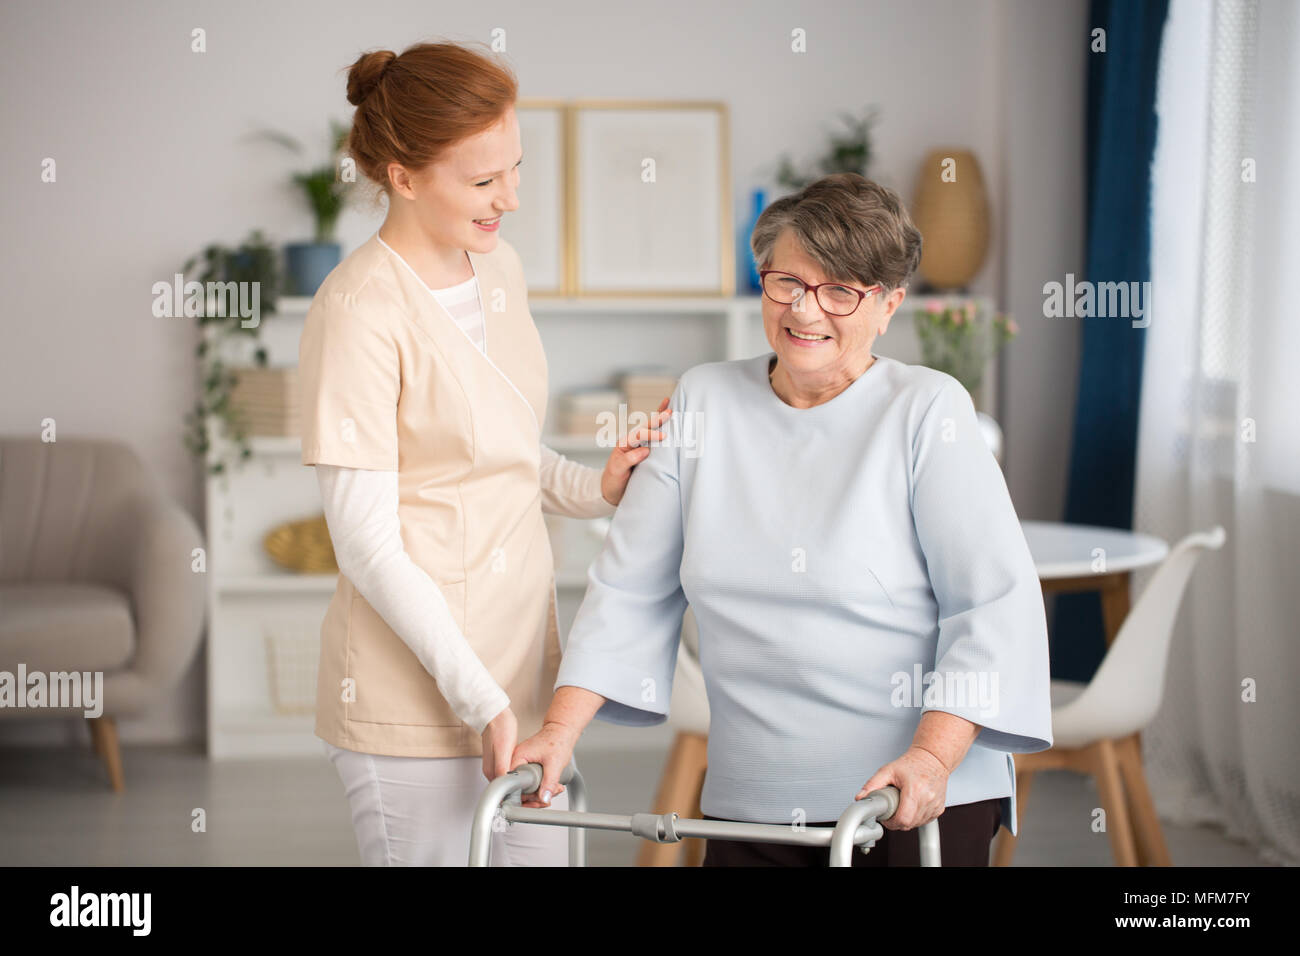 Professional medical caretaker in uniform helping smiling senior woman with a walker in a living room of private luxury healthcare clinic - Stock Image